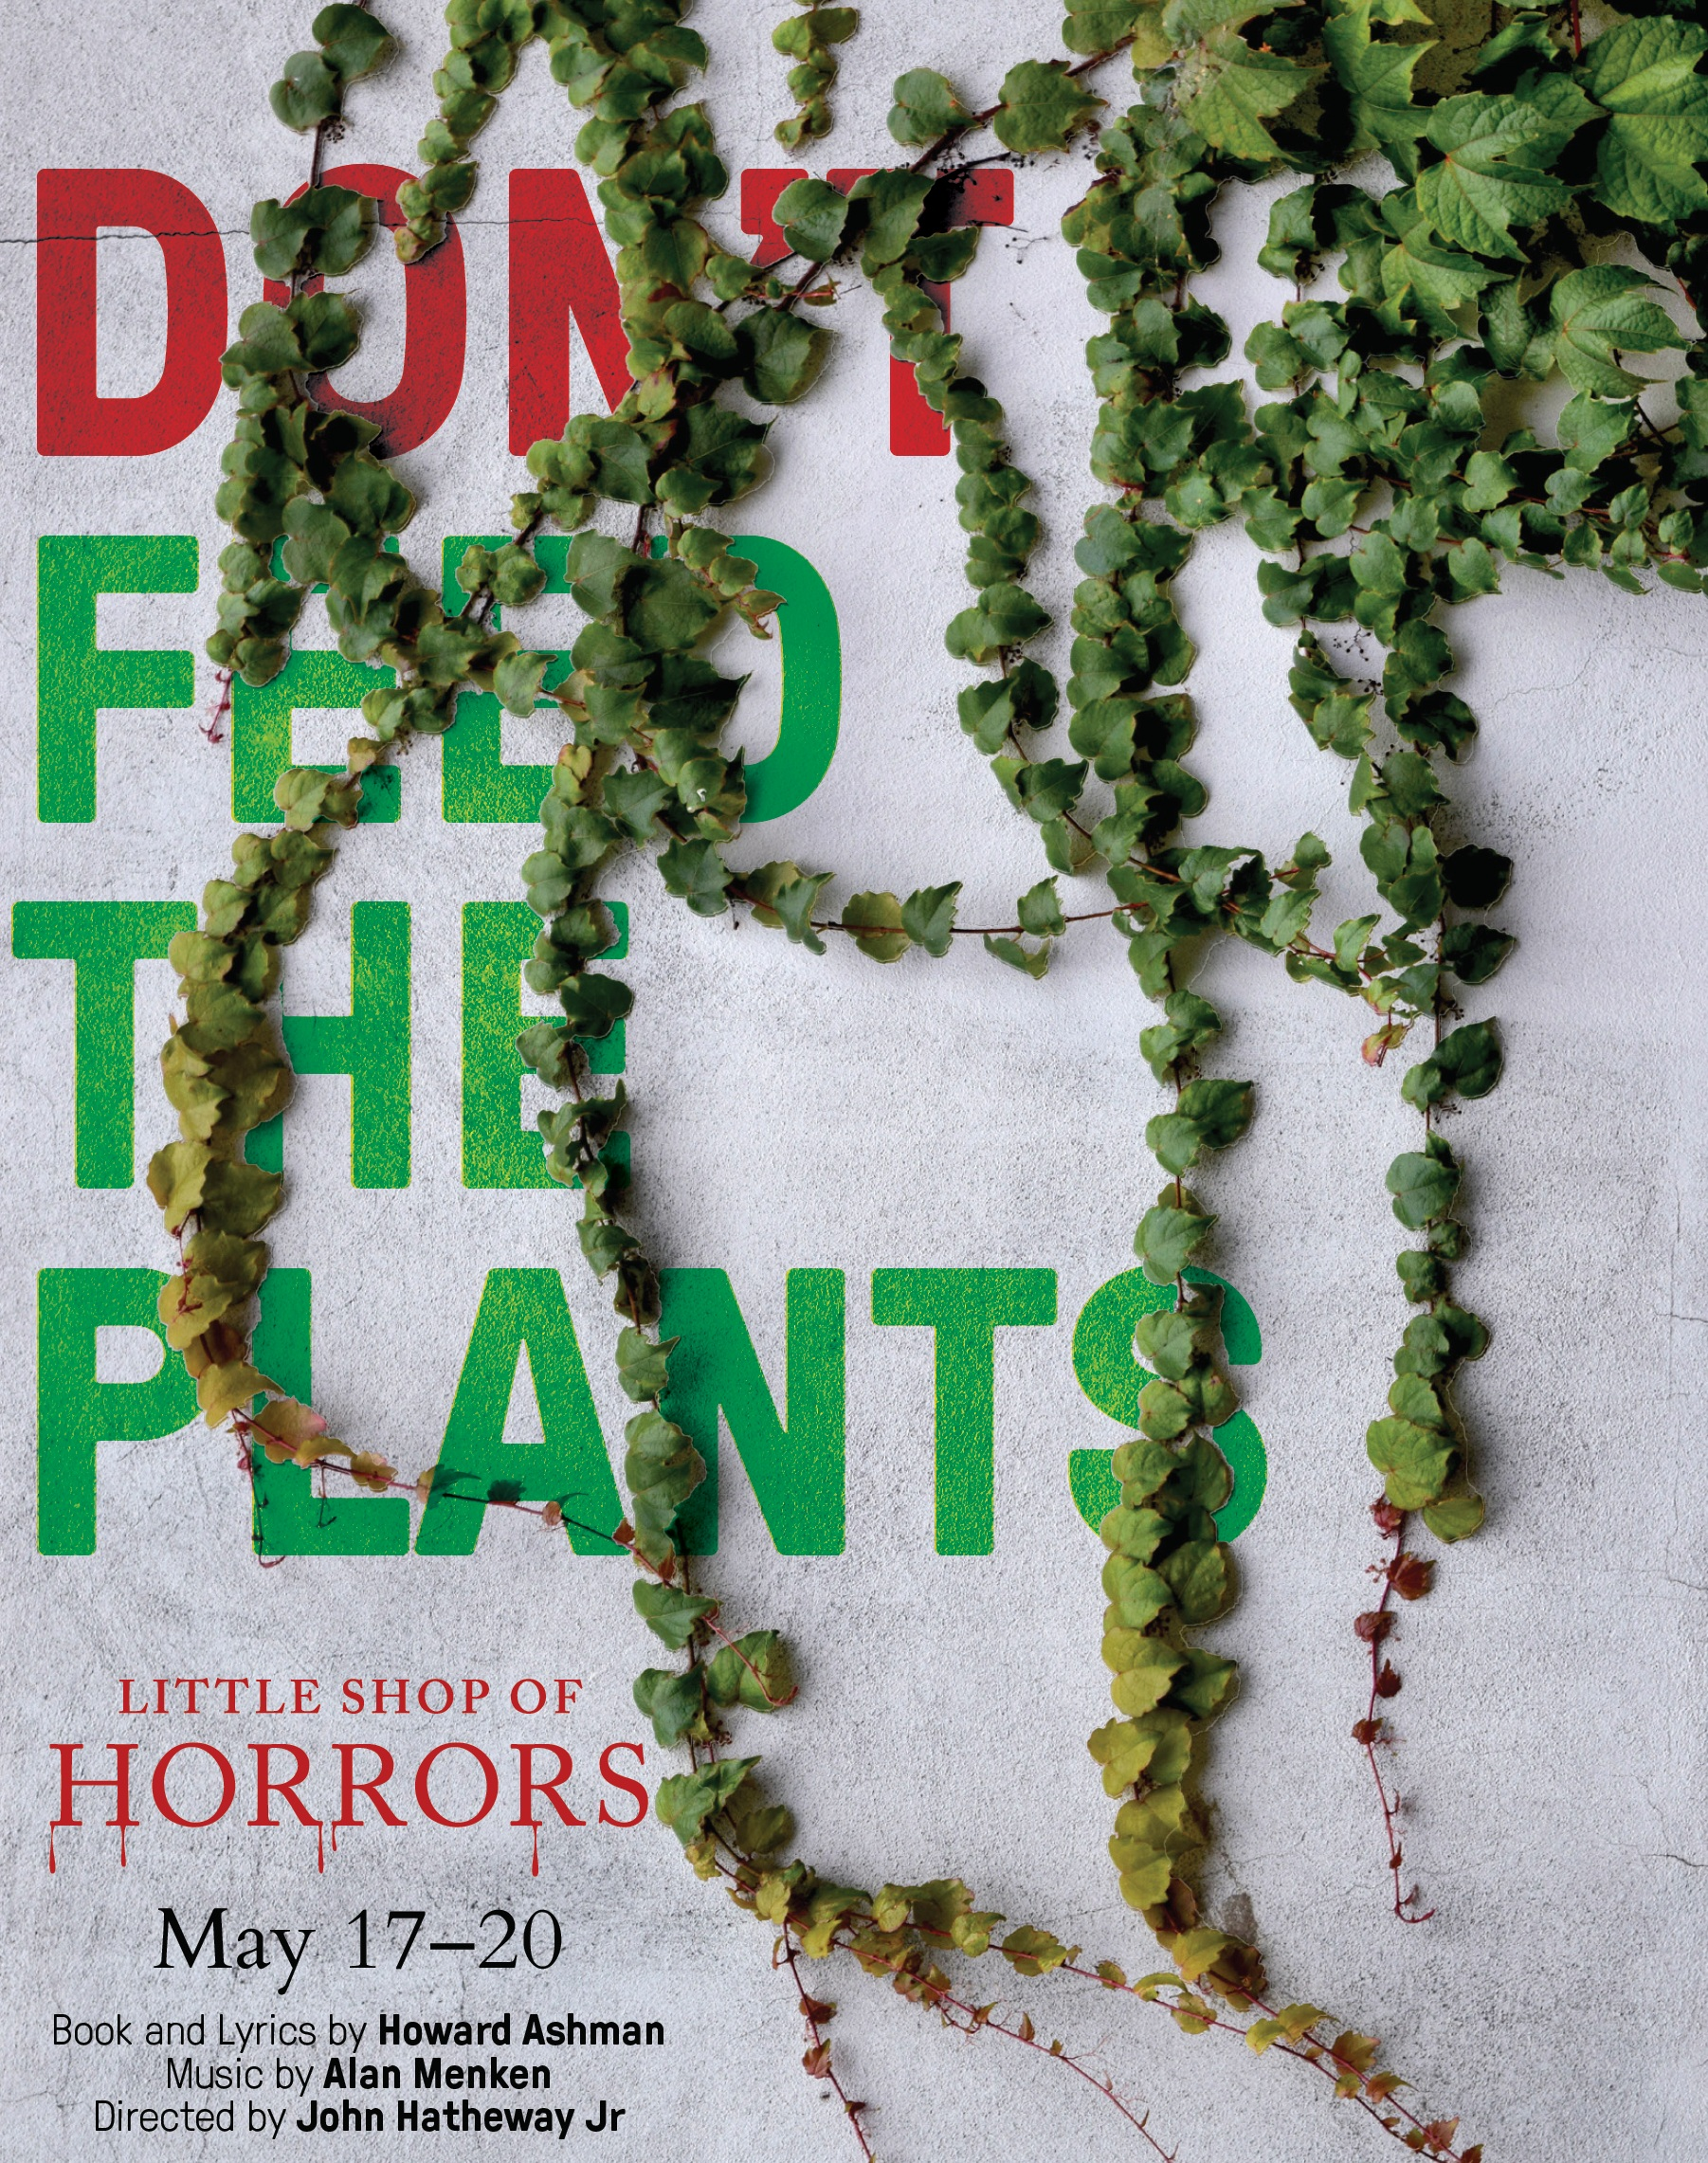 Theater Direction: Little Shop of Horrors